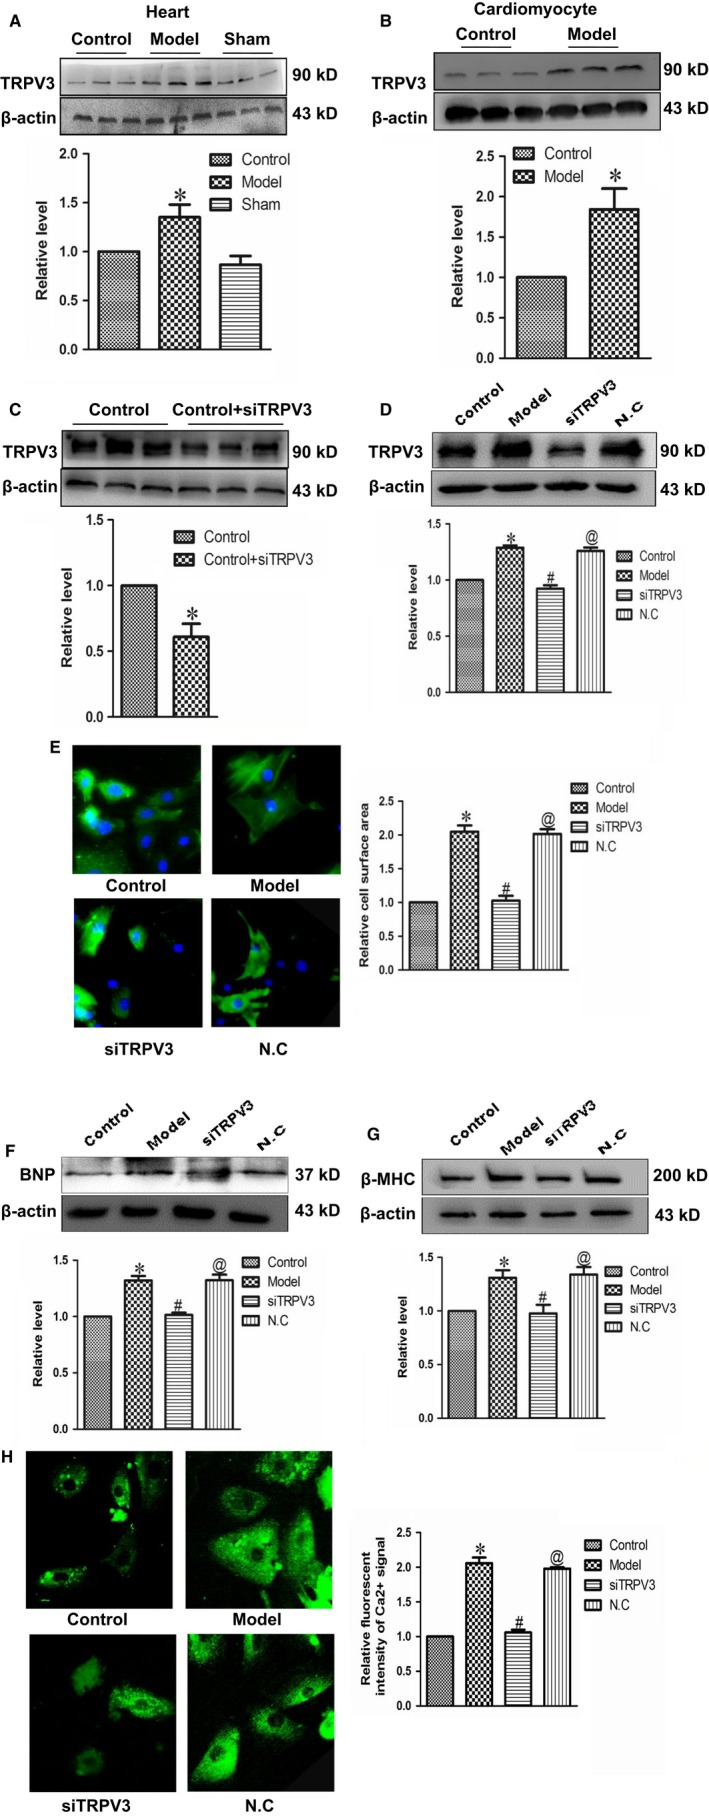 TRPV 3 activation promoted cardiac hypertrophy. (A and B) The expressions of TRPV 3 protein were measured in vivo and in vitro. (C and D) Successfully silencing TRPV 3 by transfecting TRPV 3‐si RNA sequence into cultured cardiomyocytes. (E) Silencing TRPV 3 reduced the surface area of cardiomyocytes (×200) treated with Ang II . (F and G) Silencing TRPV 3 suppressed the expressions of BNP and β‐ MHC protein in cardiomyocytes treated with Ang II . (H) Relative fluorescence intensity of Ca 2+ signal was recorded by laser scanning confocal microscope. Data were represented by mean ± SEM . (n = 3) * P